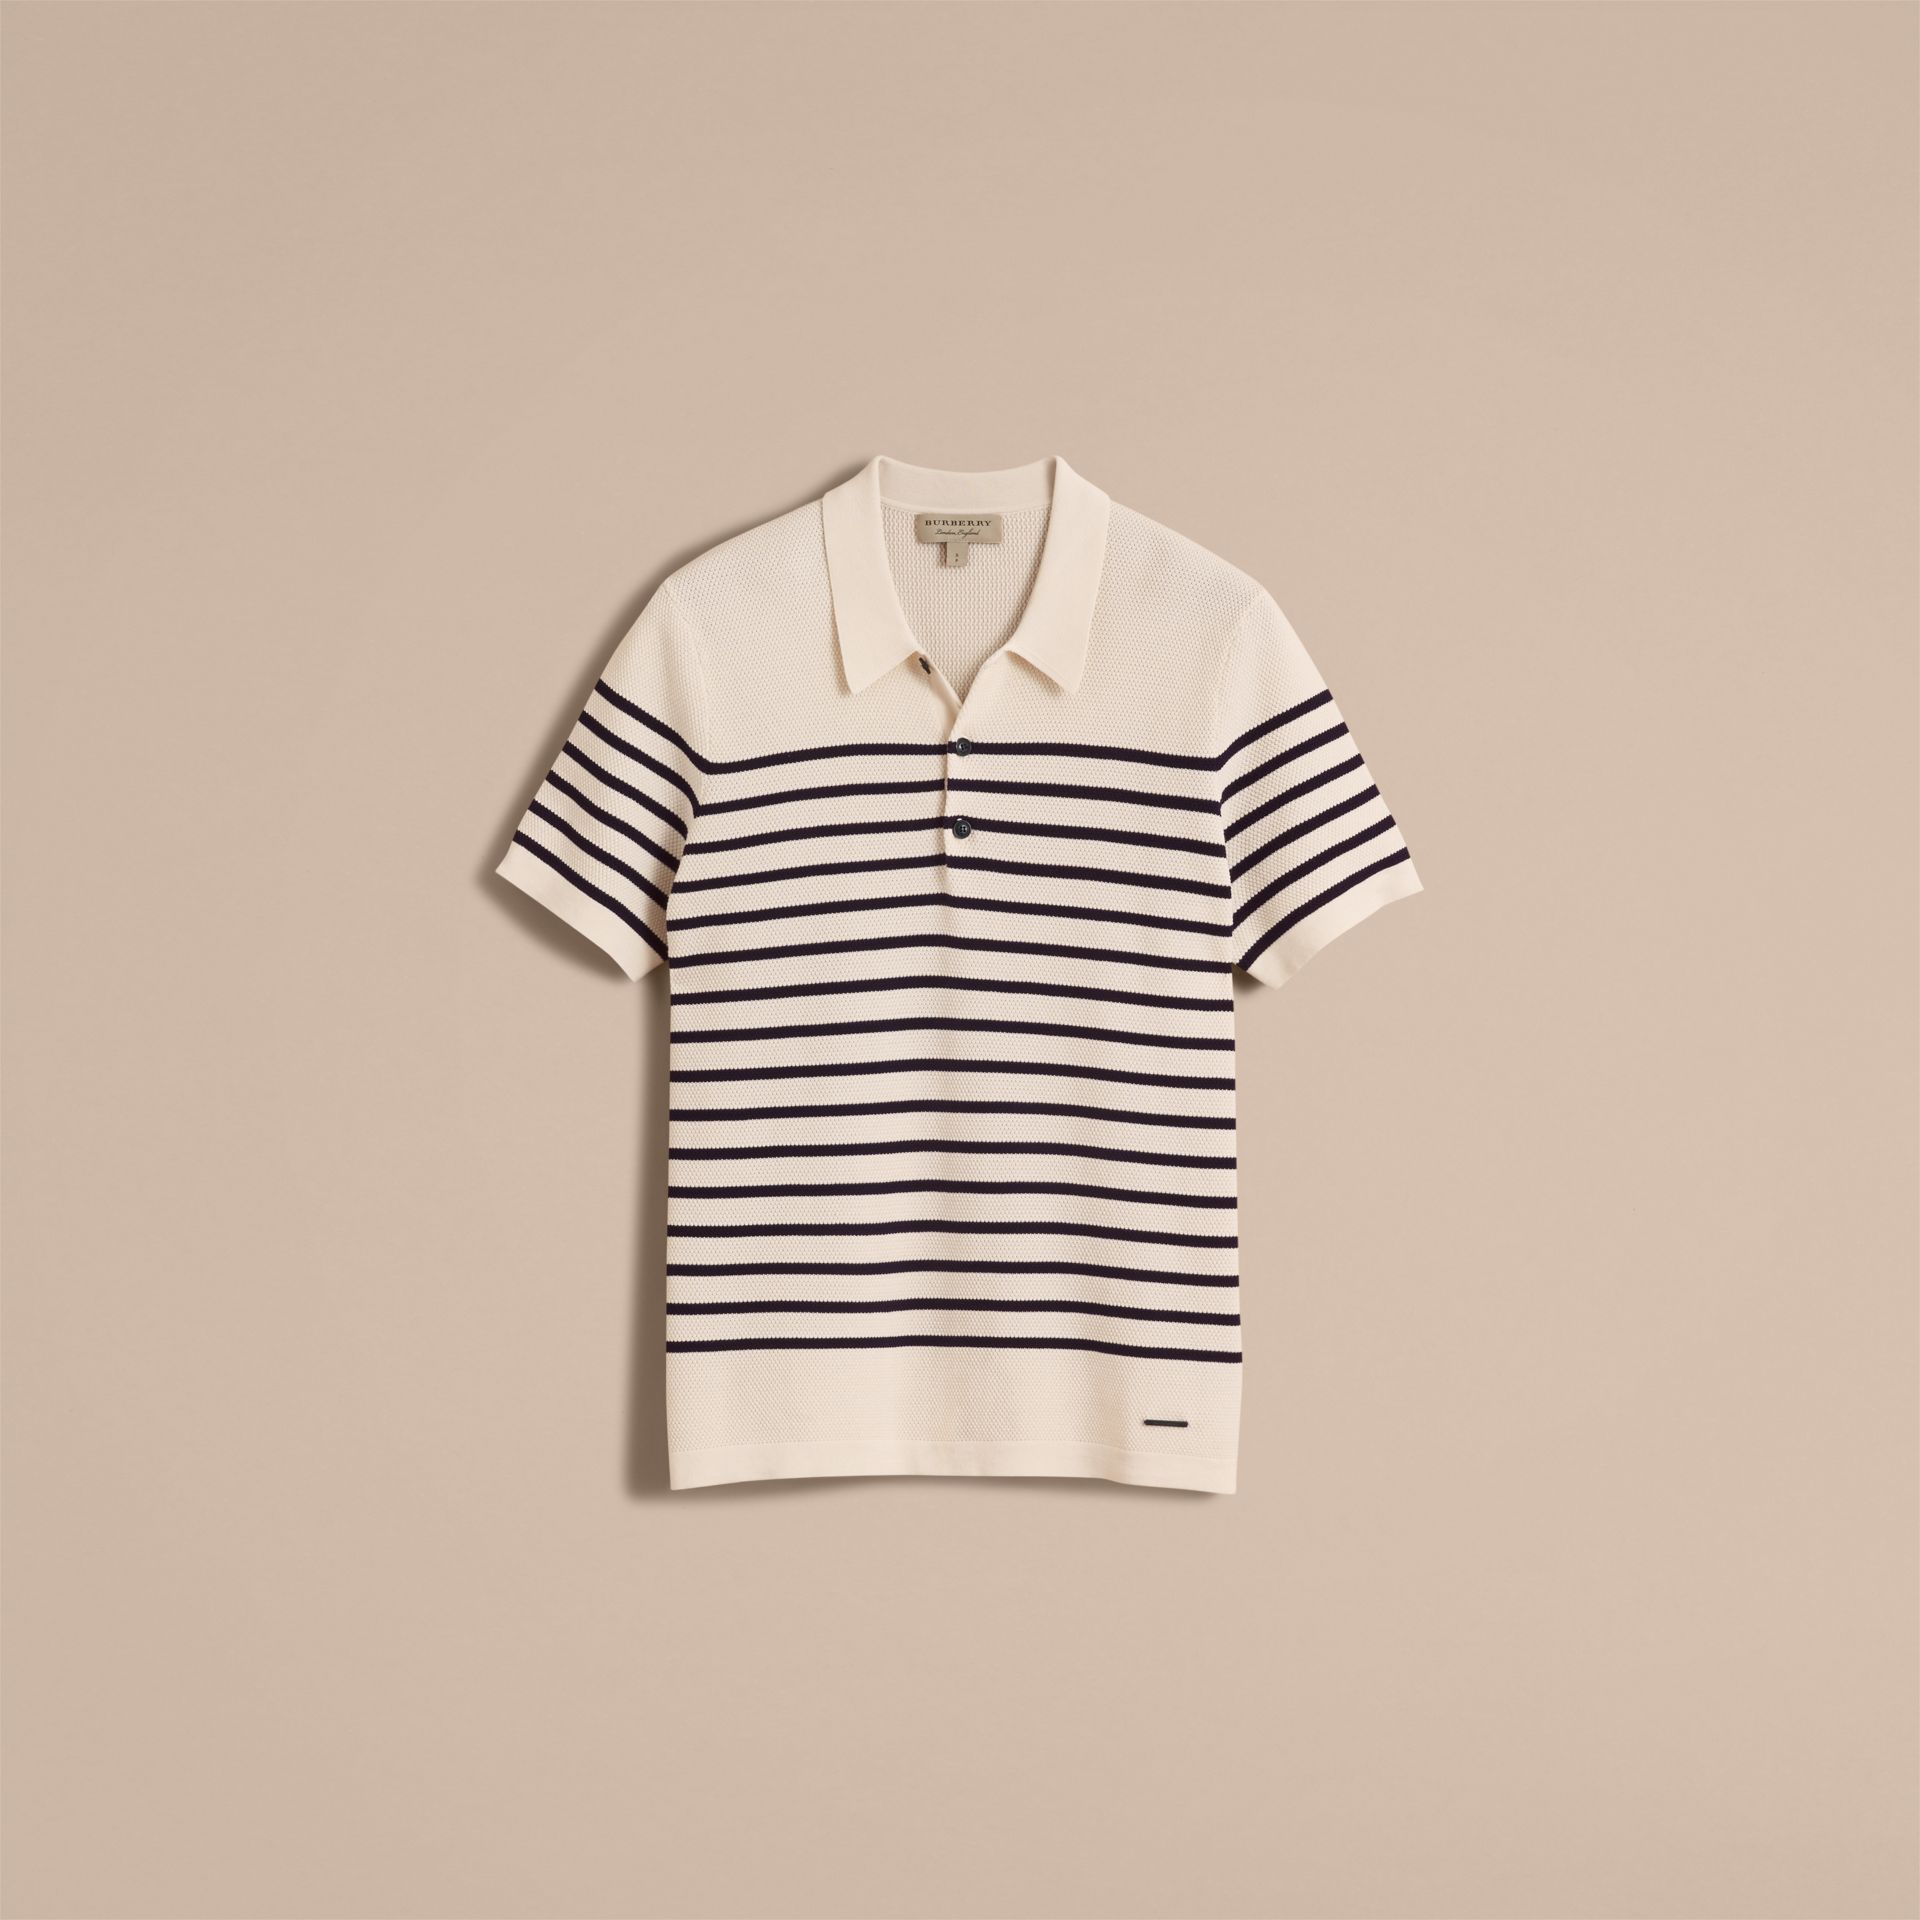 Striped Knitted Cotton Polo Shirt in White - Men | Burberry Canada - gallery image 4